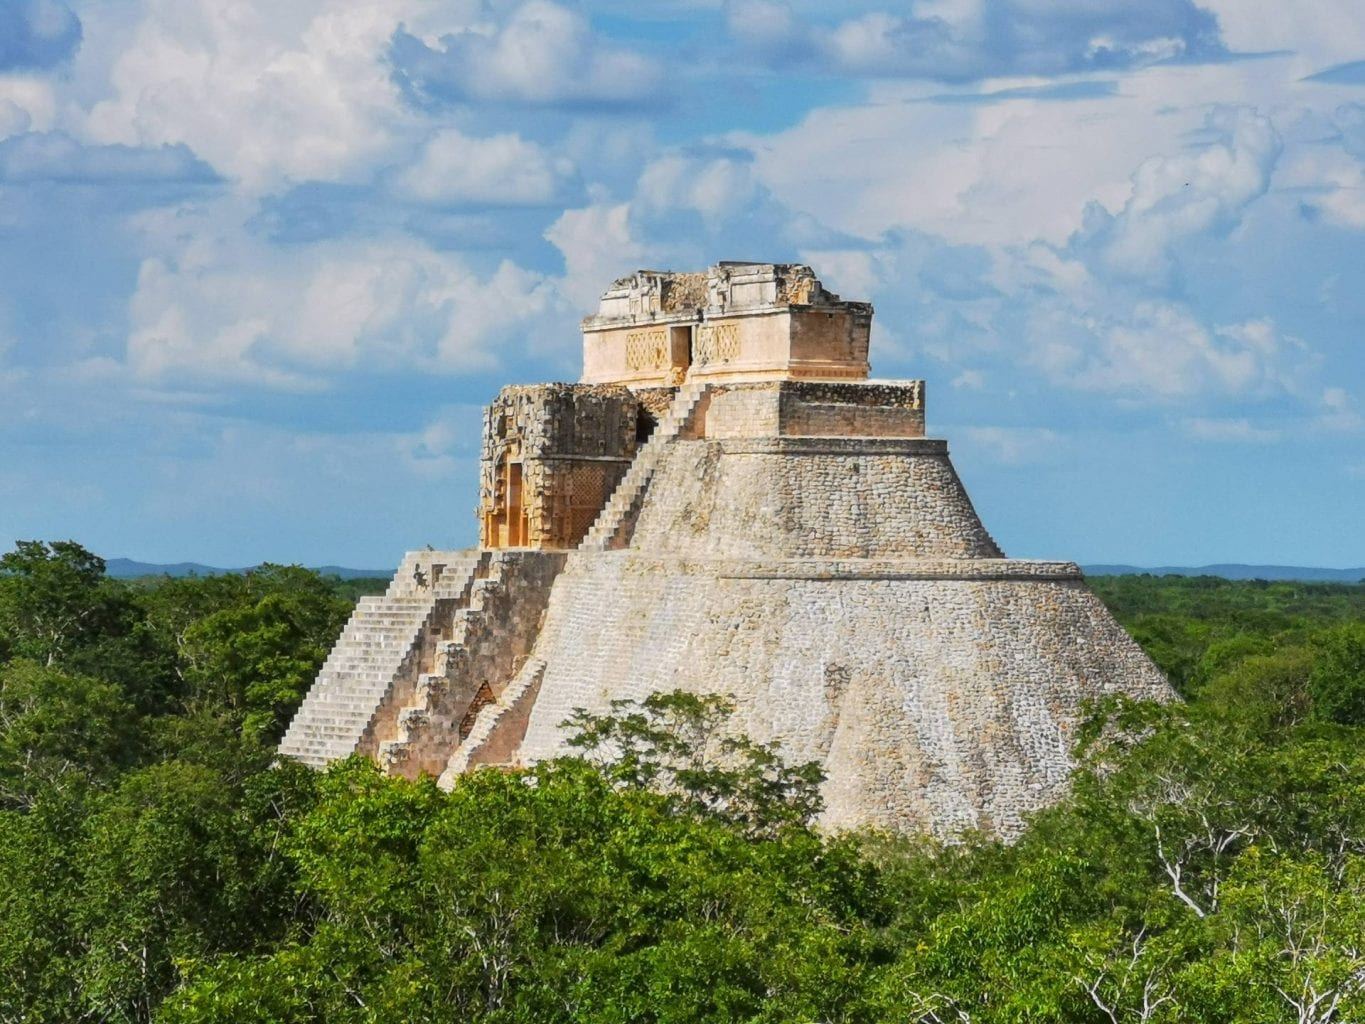 The magnificent ancient Mayan structures of Uxmal. Credit: Shutterstock